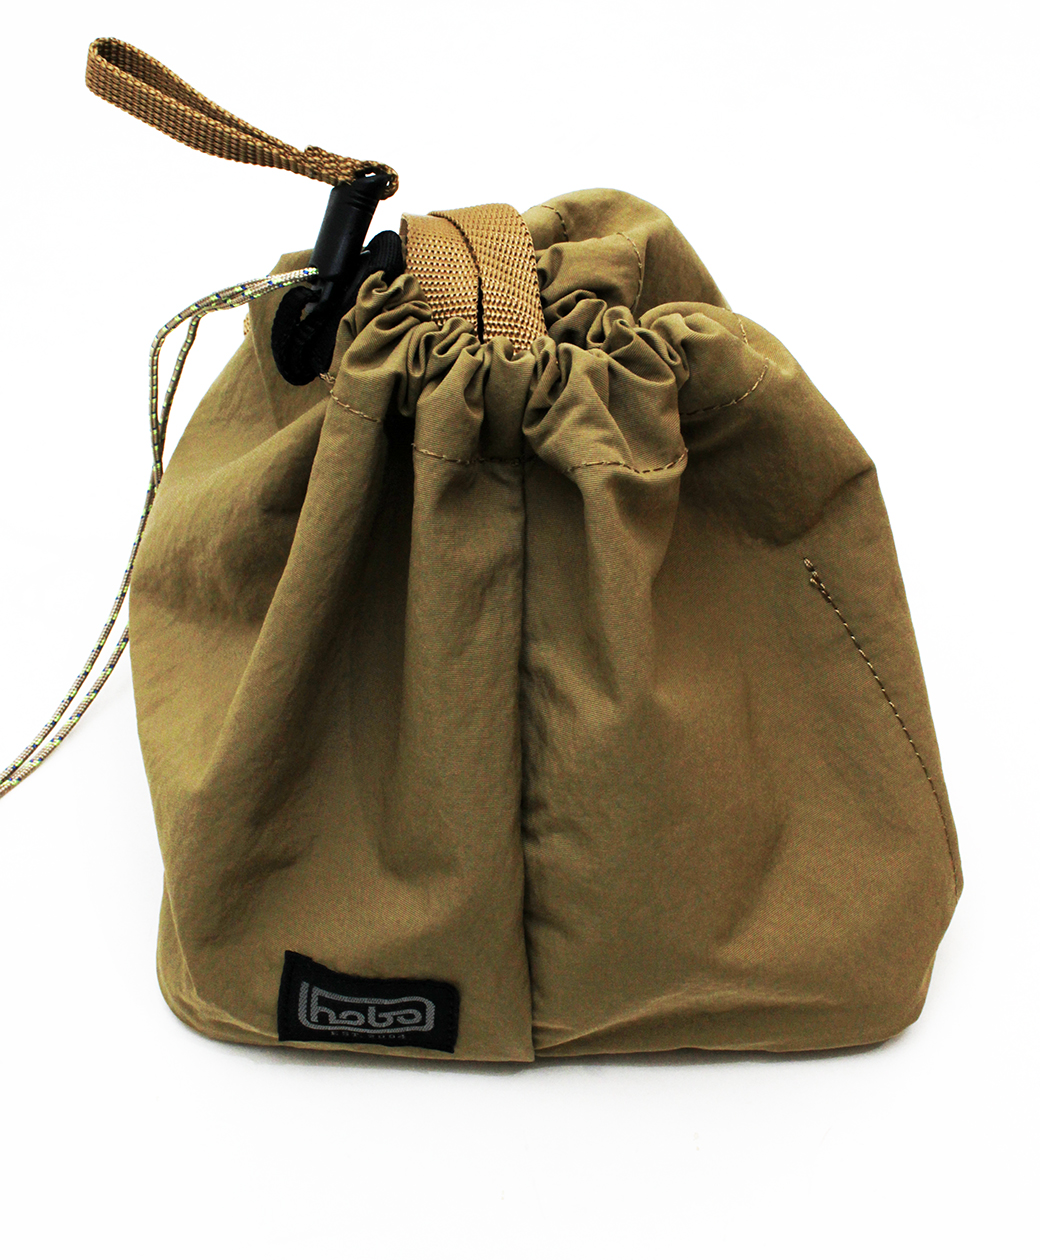 hobo NYLON TUSSAH DRAWSTRING SHOULDER BAG(BEIGE)